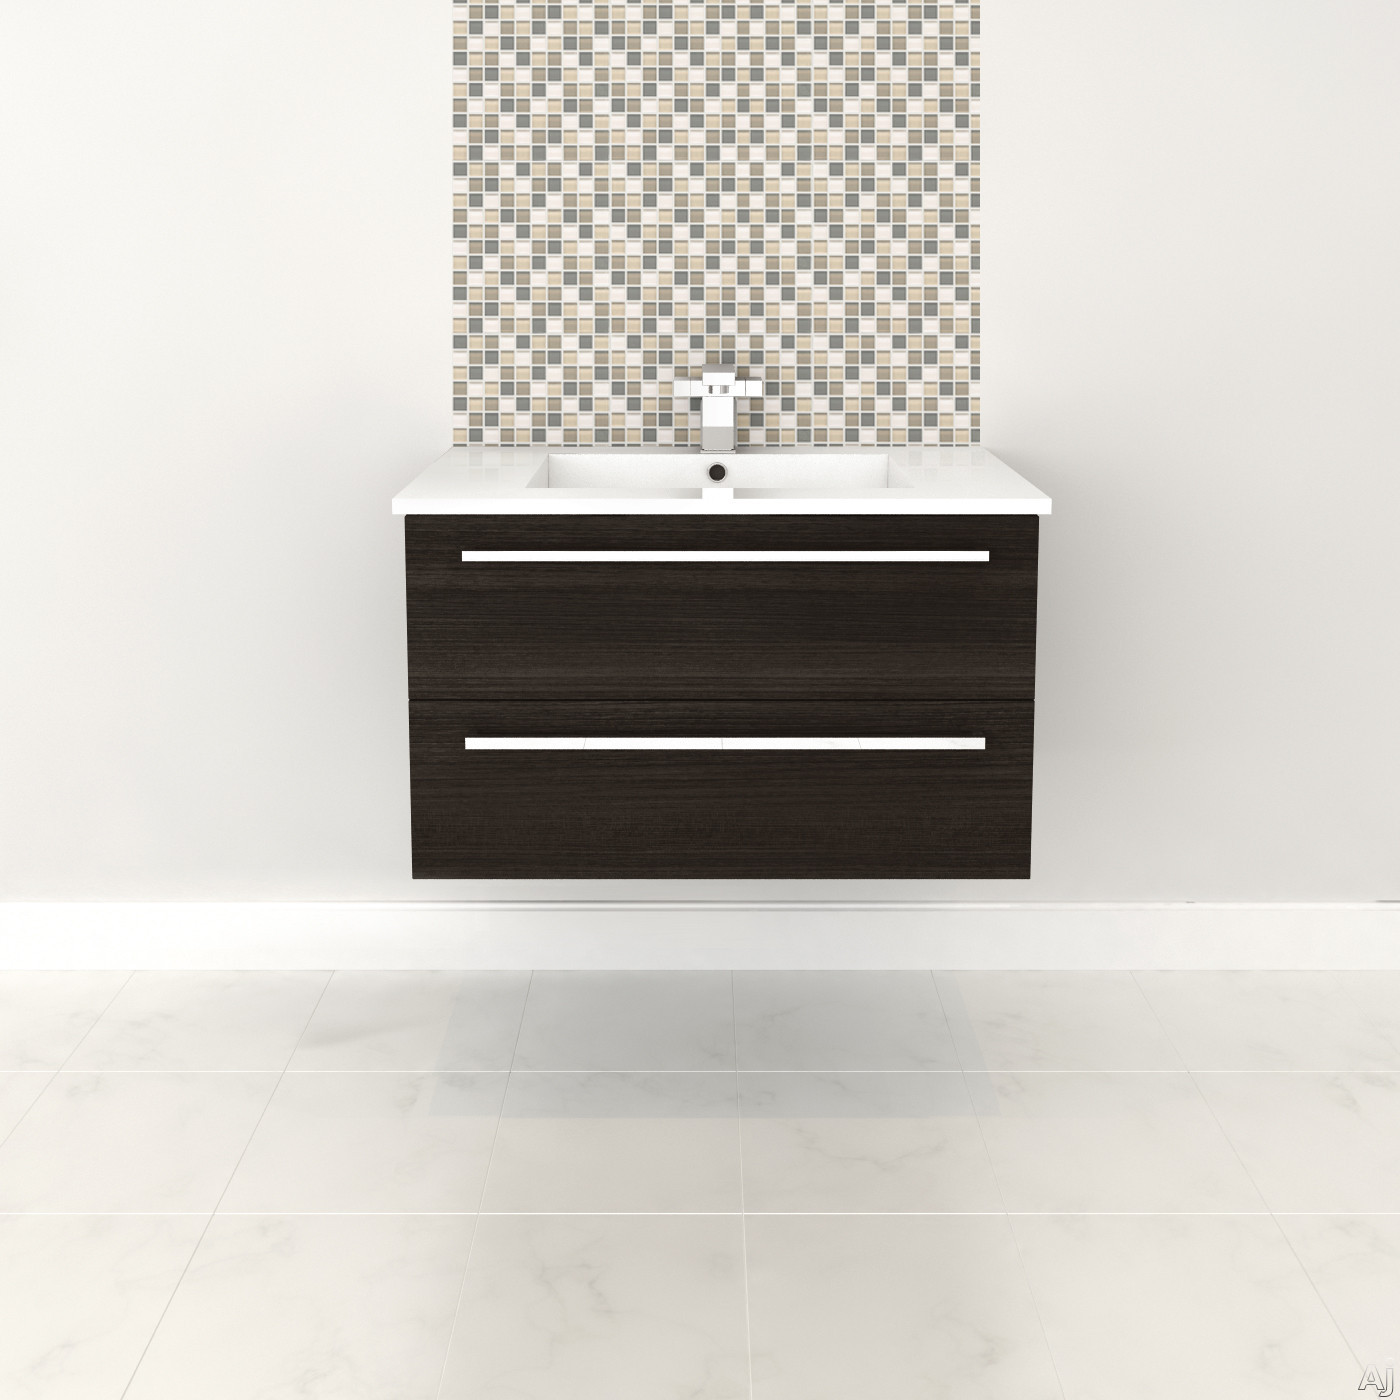 Cutler Kitchen & Bath Silhouette FVDCHOC30 30 Inch Wall Mount Vanity with 2 Soft Close Drawers, Countertop and Sink and Handles Included: Dark Chocolate